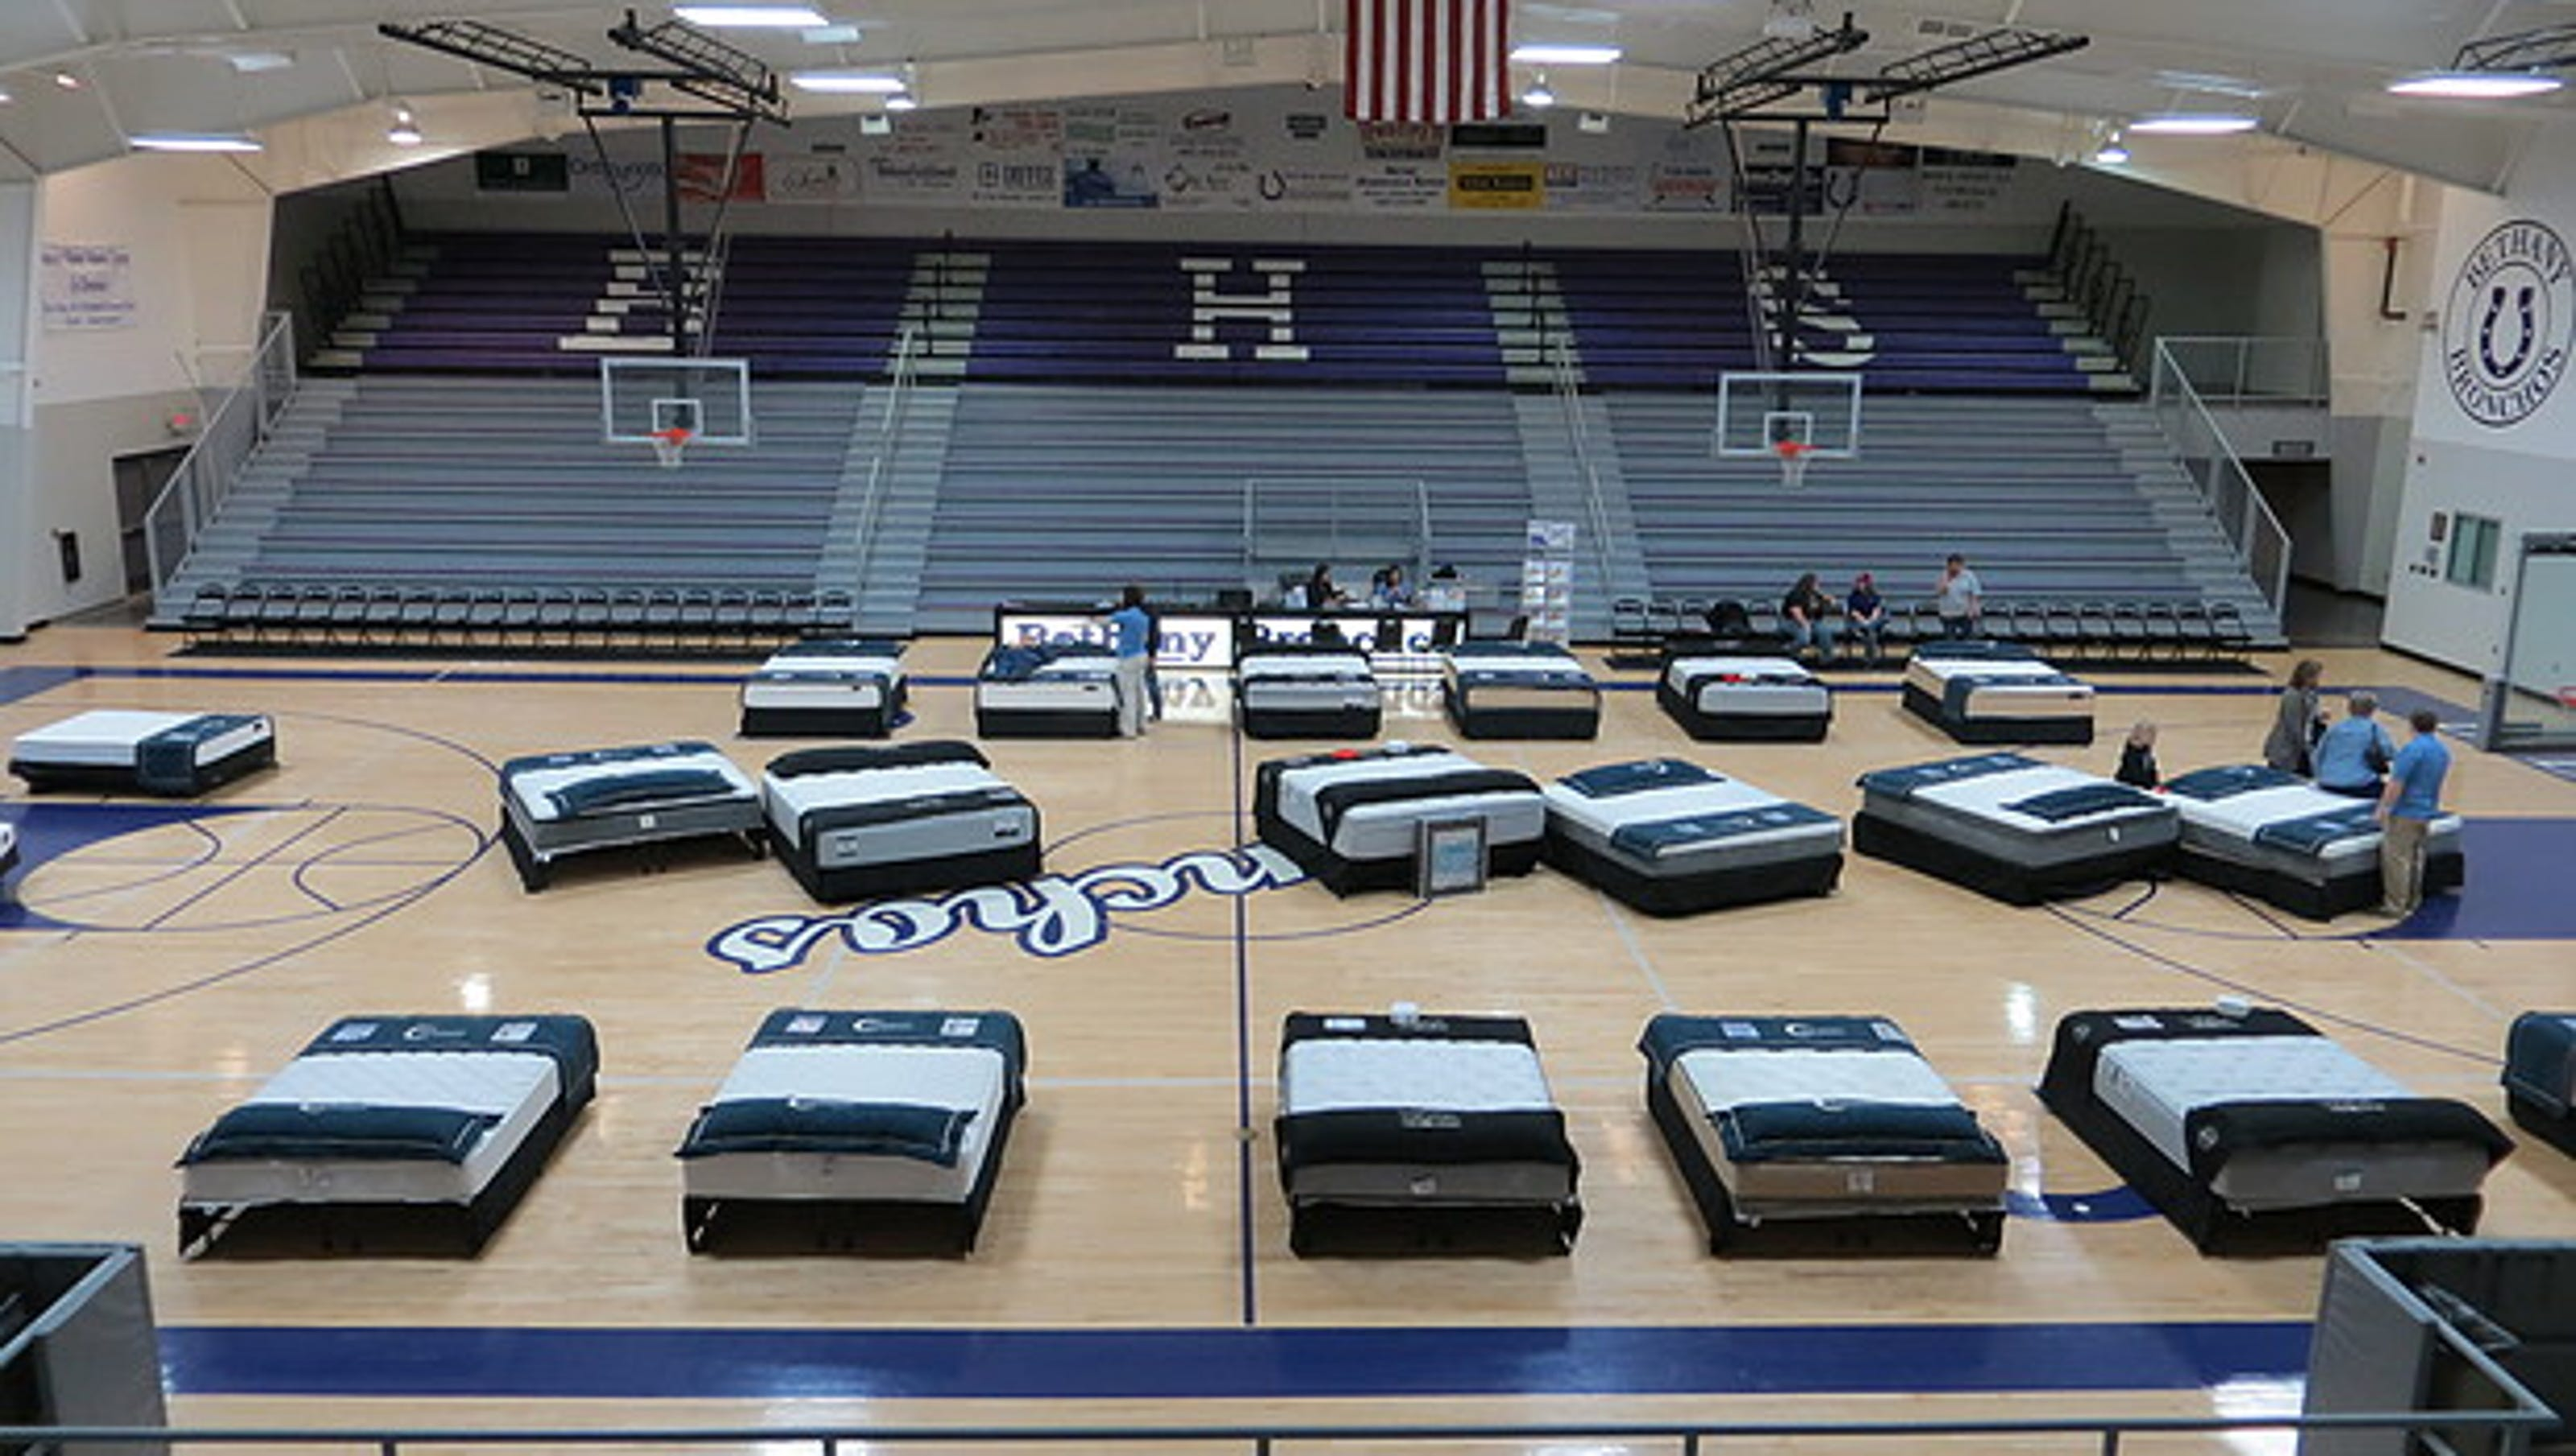 mattress fundraiser to be held at lenape high school